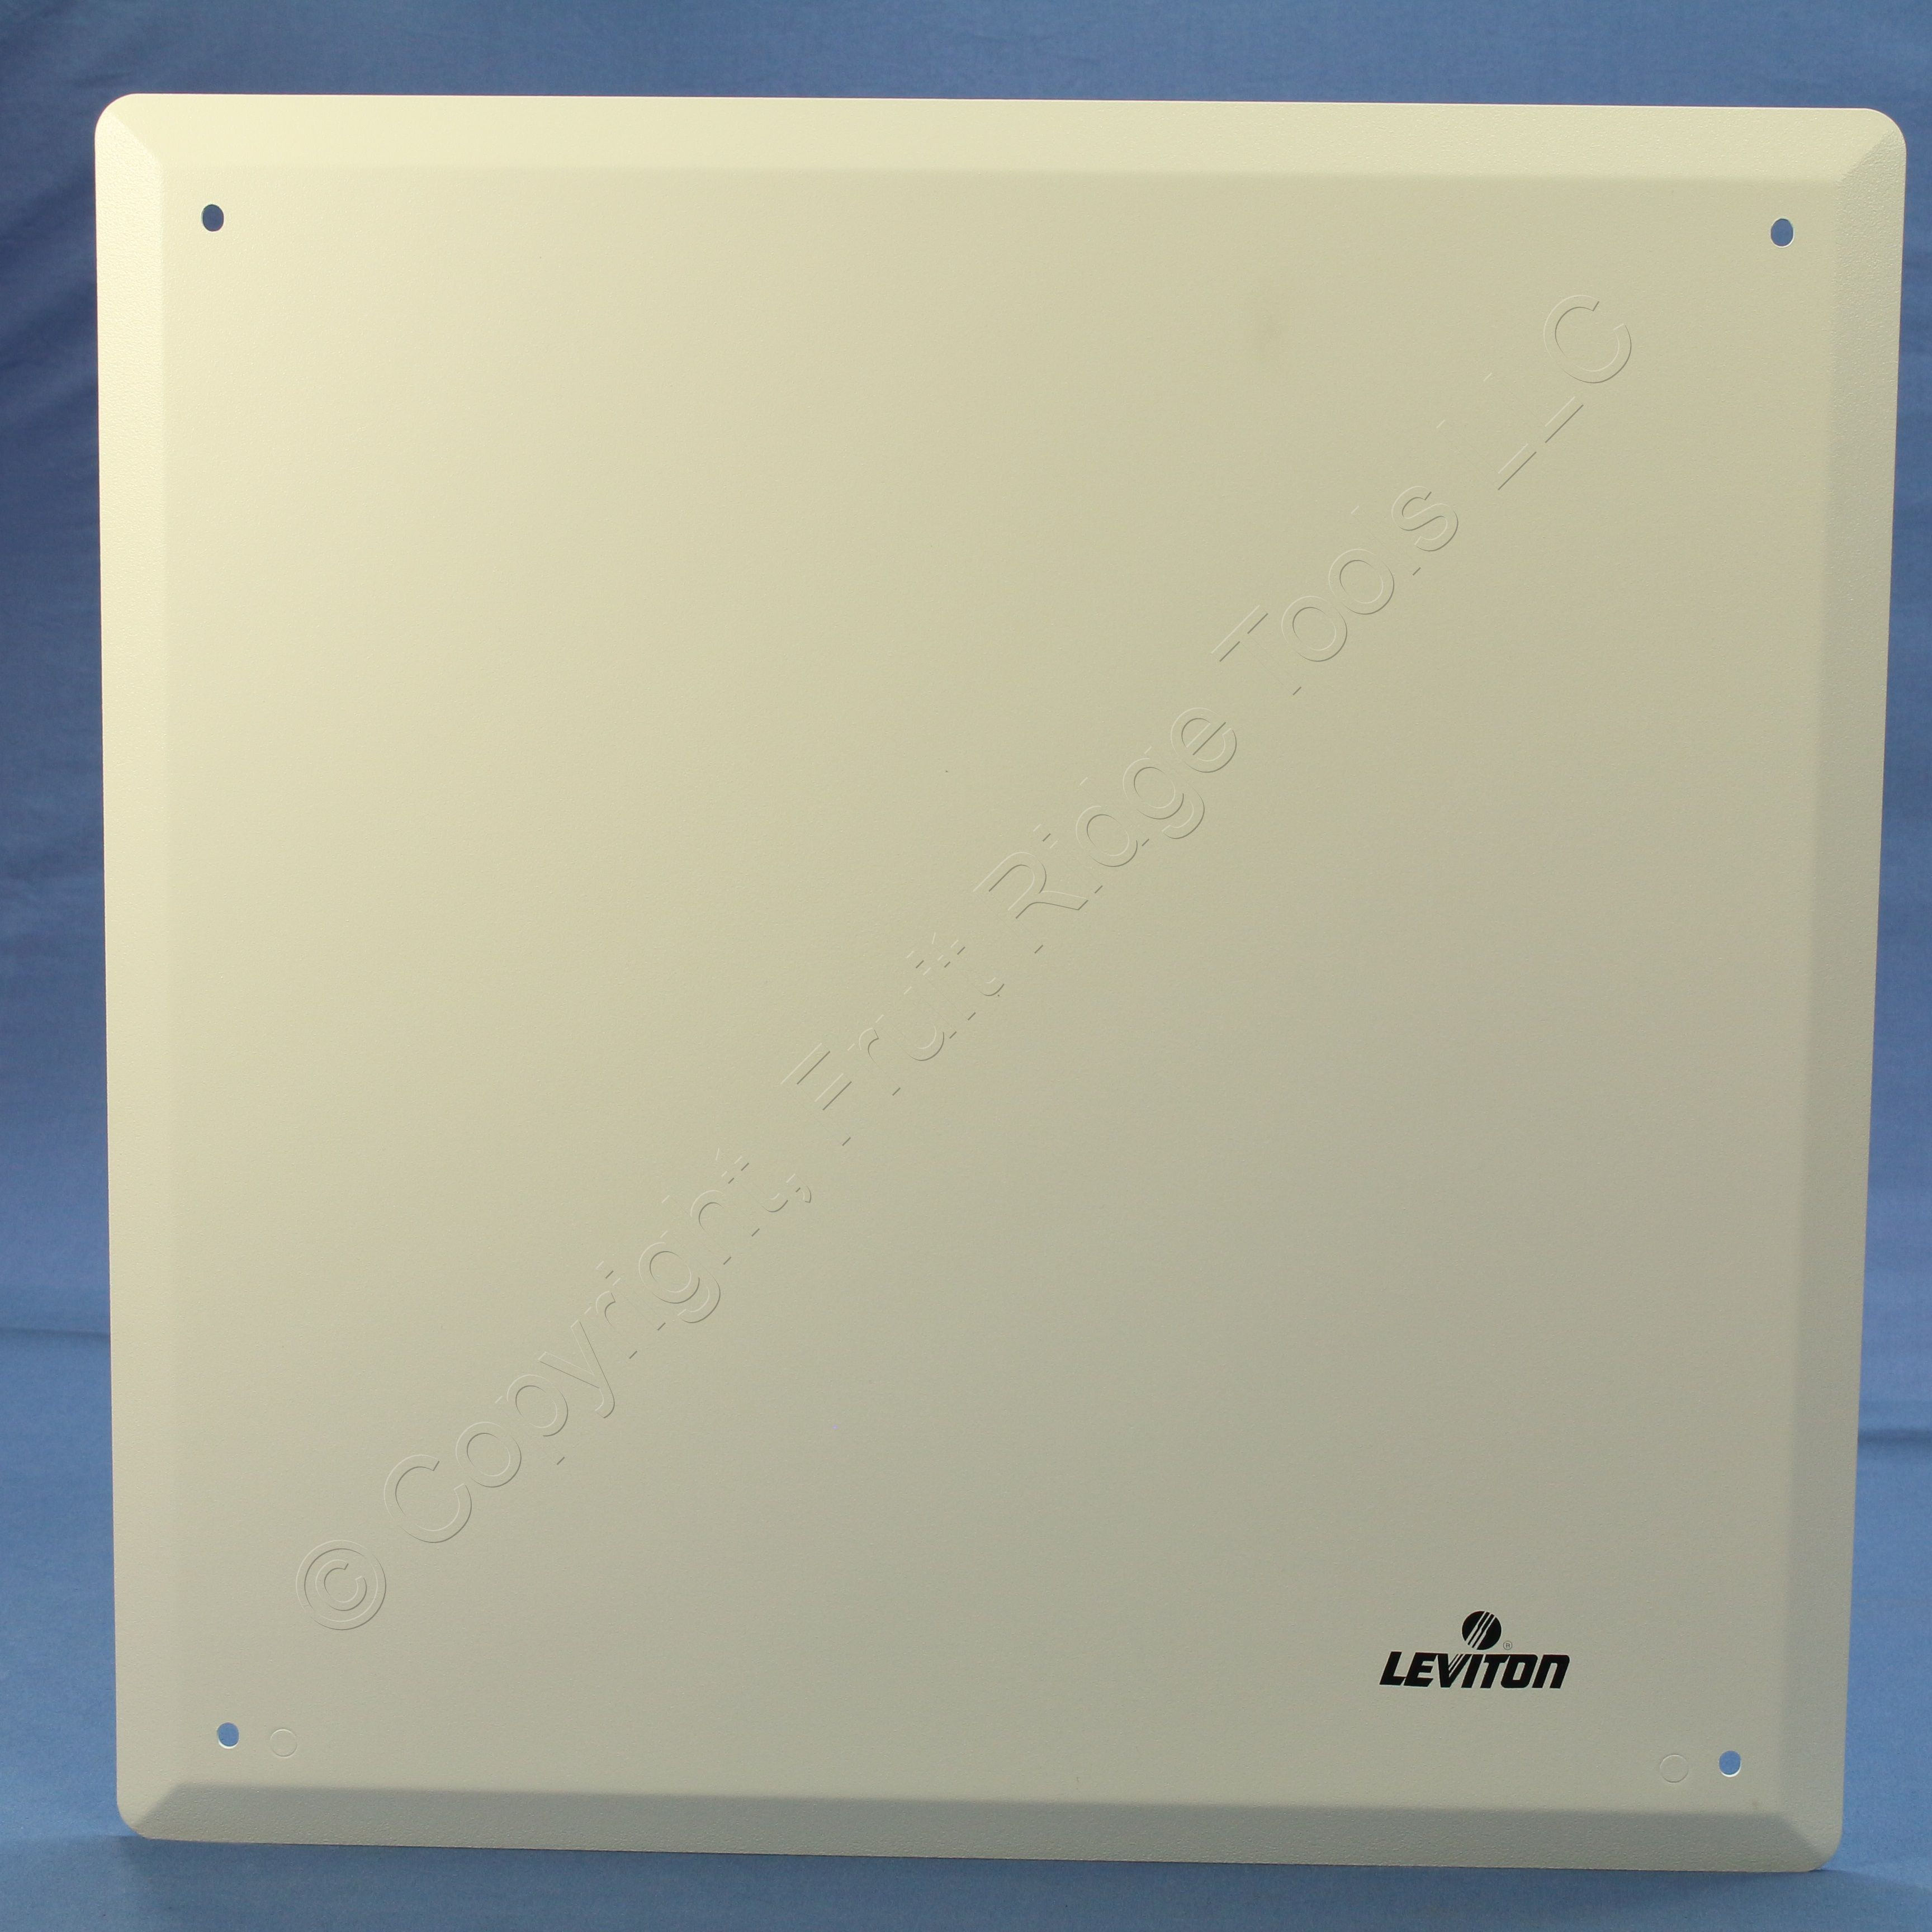 Leviton 140 Structured Media Center Wiring Panel With Cover 4760514w